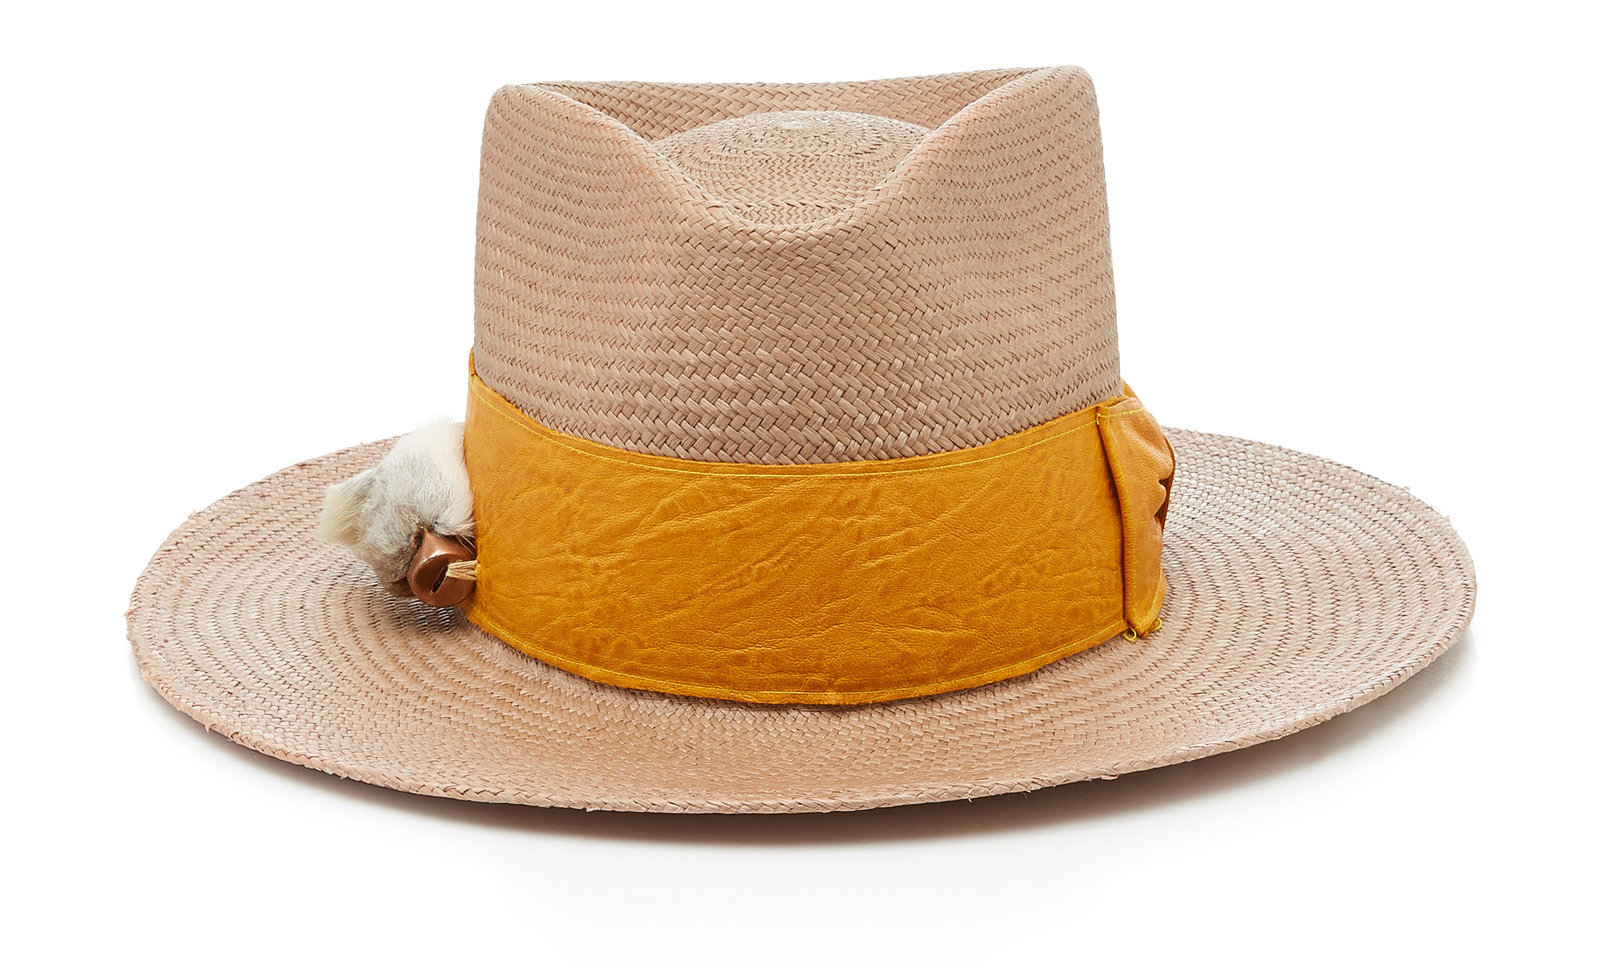 large_nick-fouquet-yellow-m-o-exclusive-porto-straw-hat.jpg